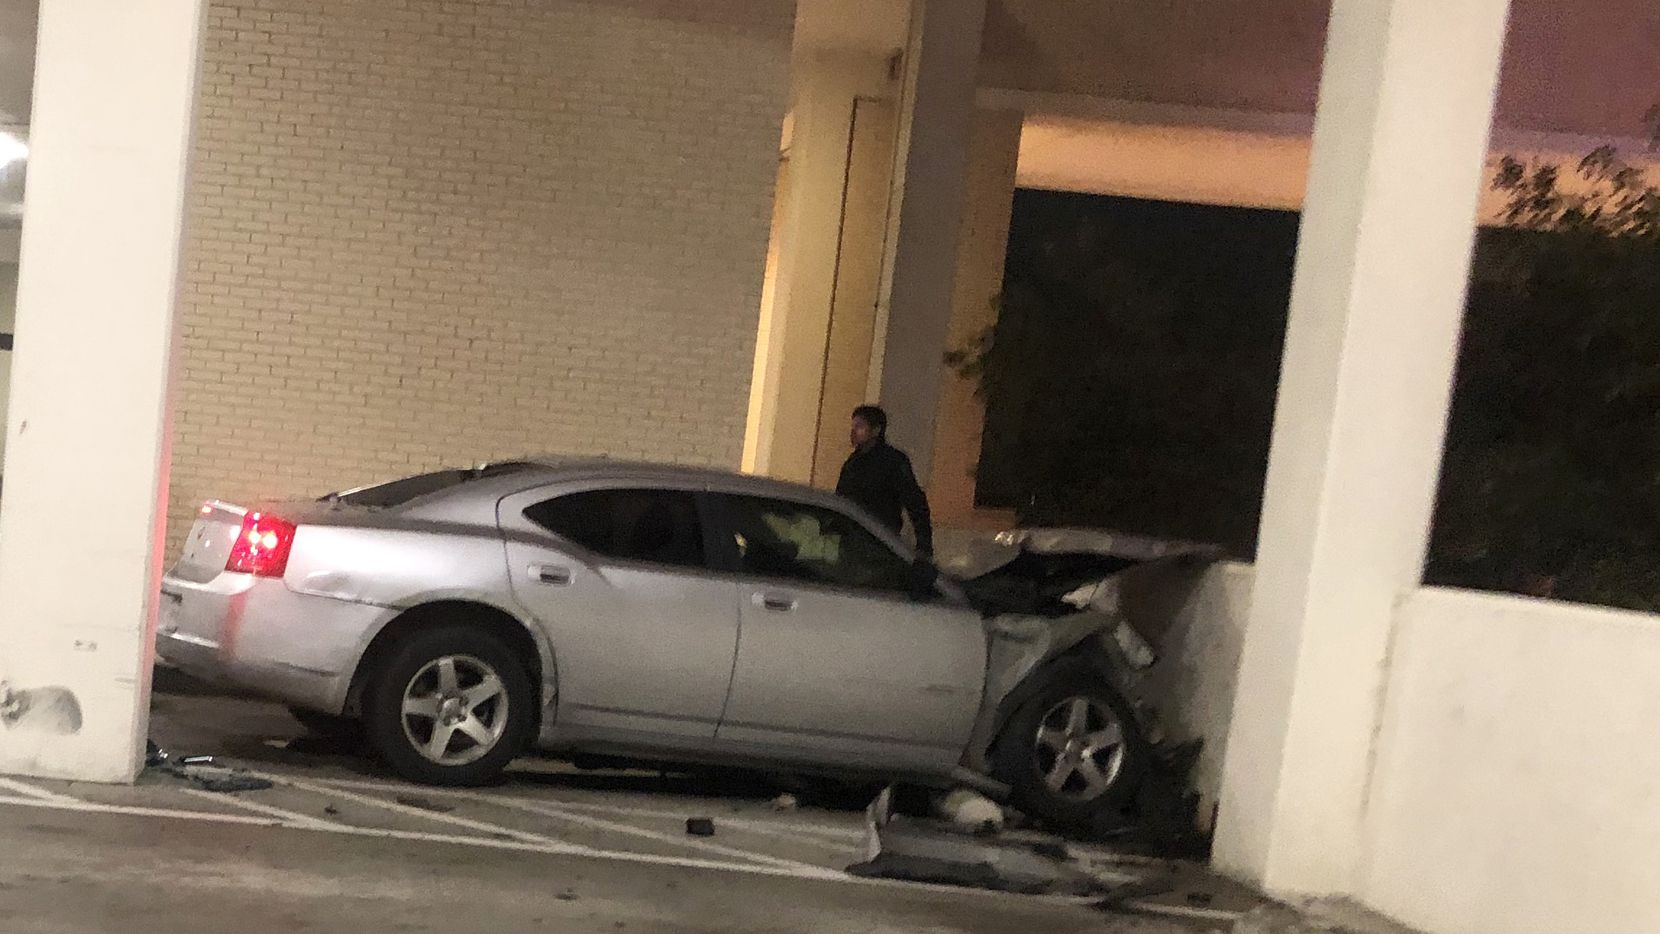 A Dodge Charger driven by Christopher Ryan Shaw, 29, struck two pedestrians, killing Yu Luo and injuring Shiguo Wang on March 11, 2019.  The accident occurred in the parking garage attached to Nordstrom at the NorthPark Center shopping center